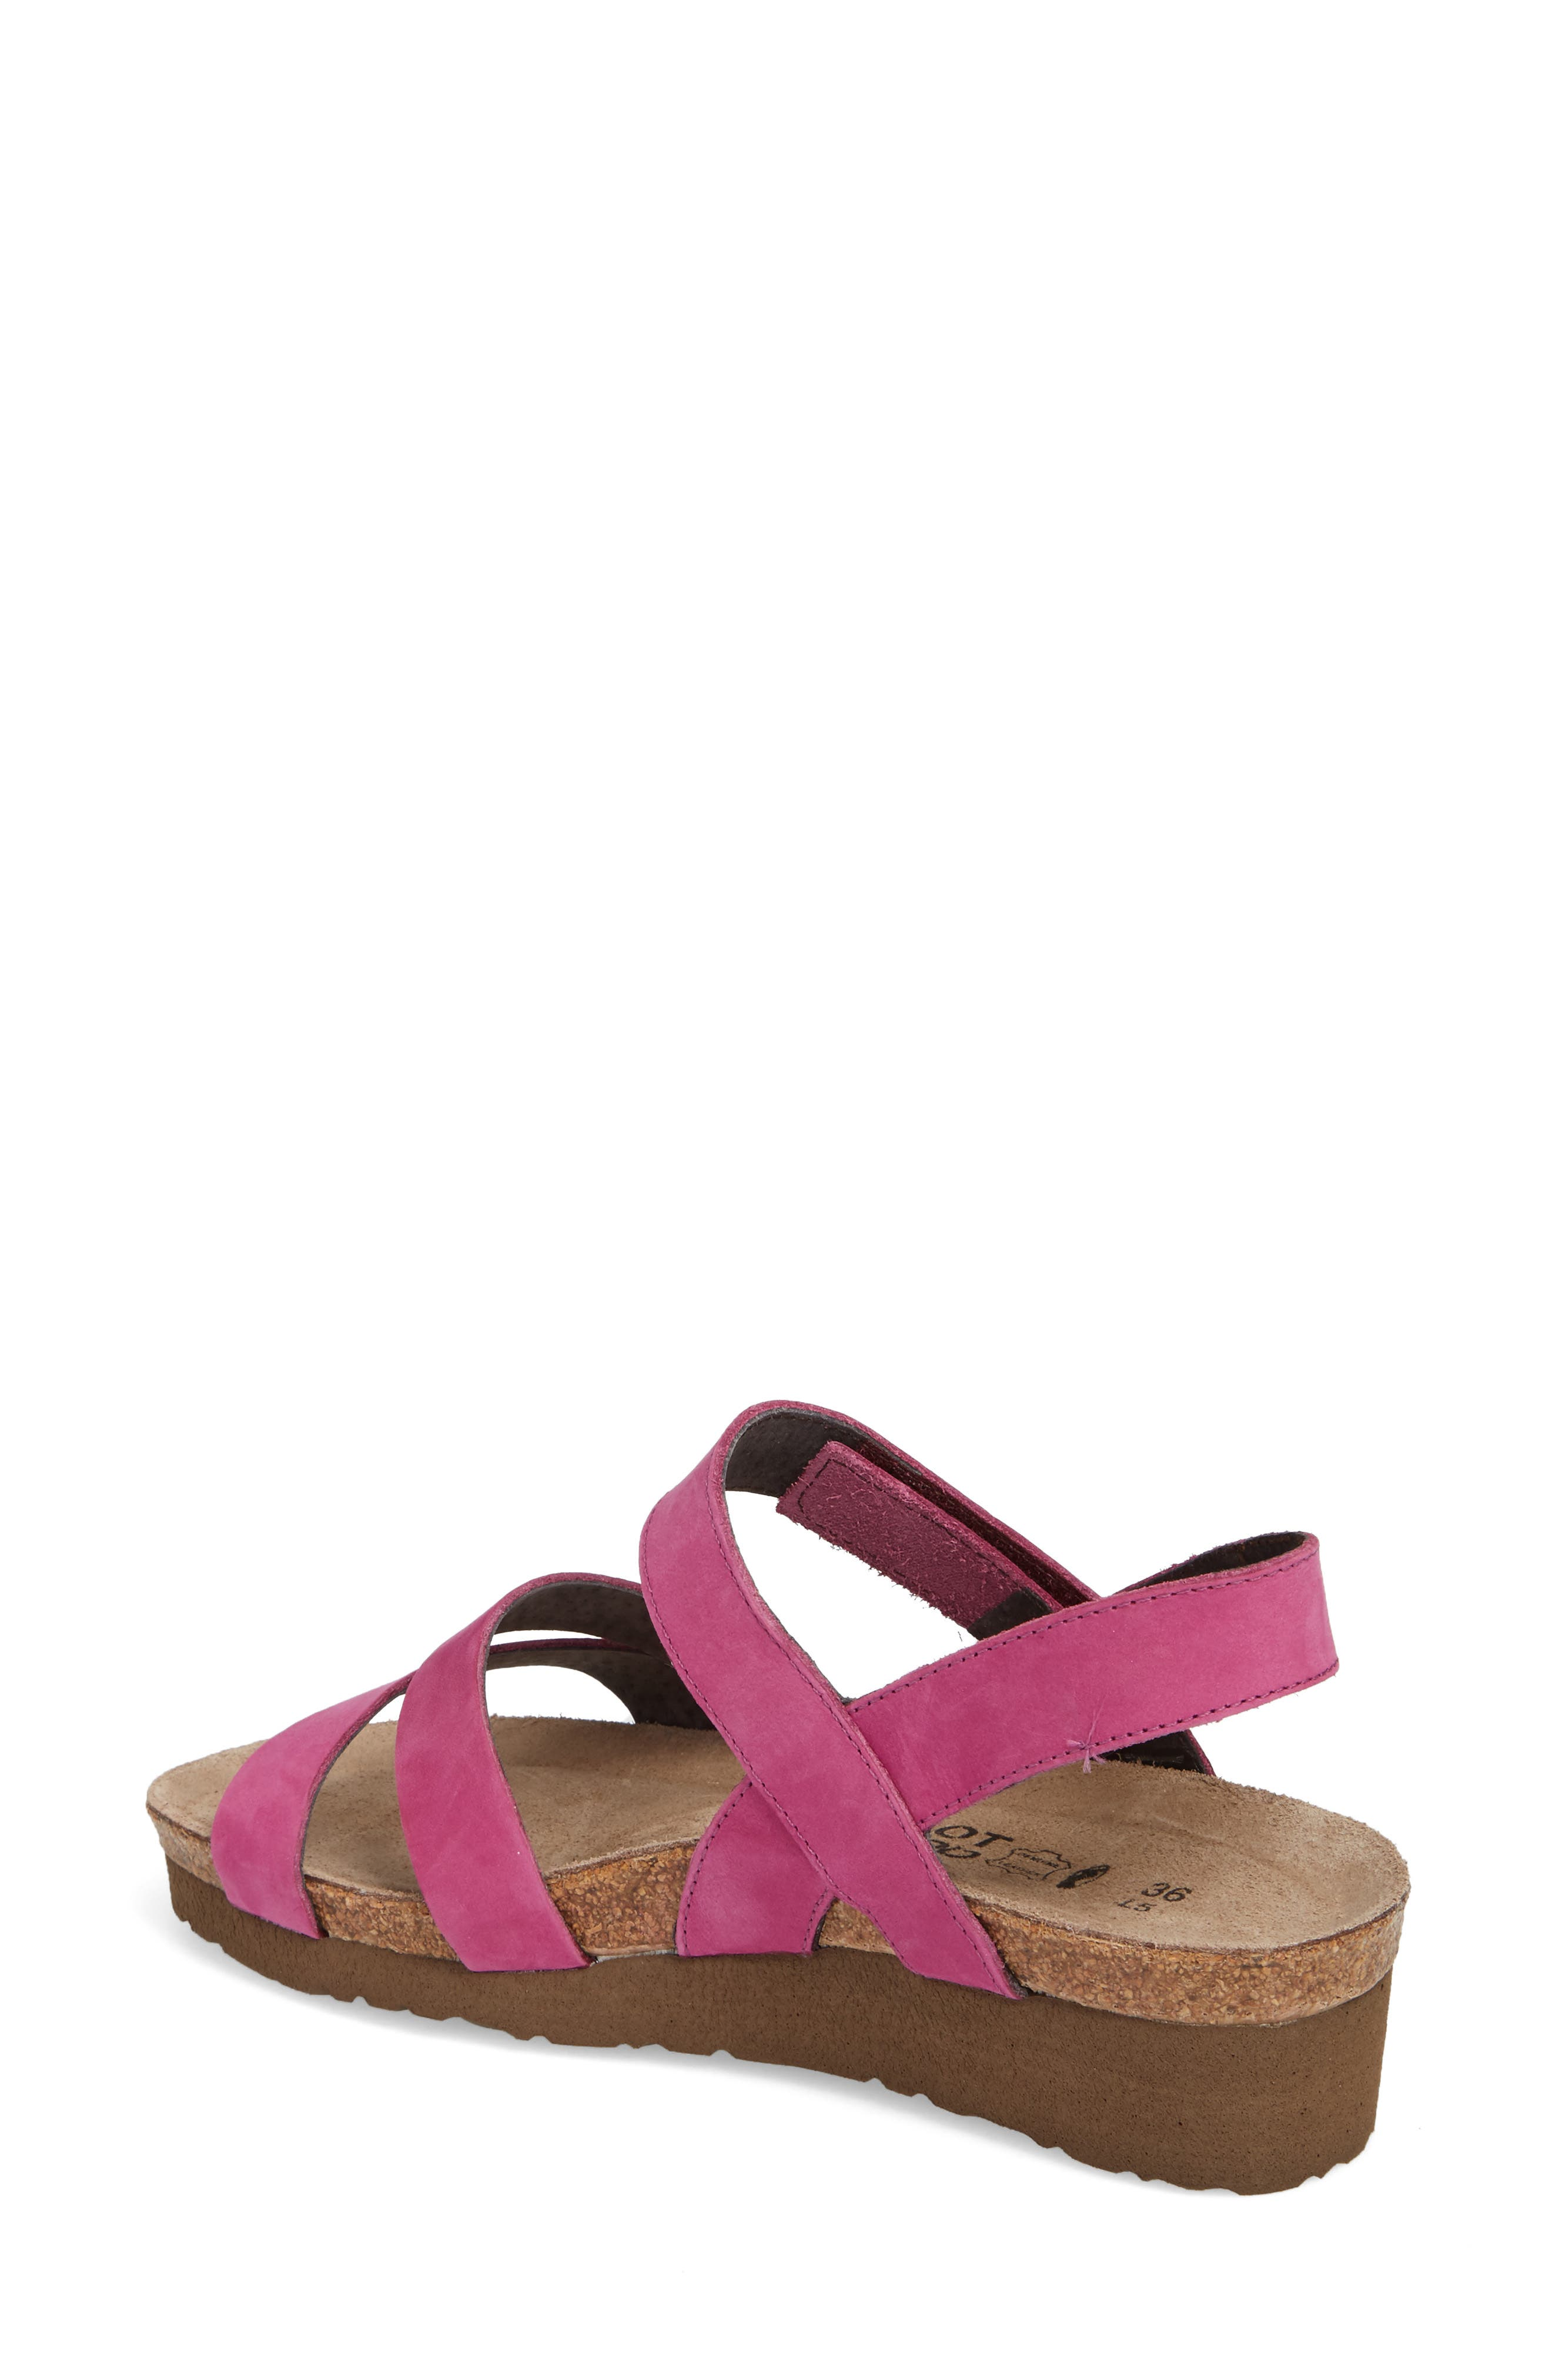 'Kayla' Sandal,                             Alternate thumbnail 2, color,                             Pink Plum Nubuck